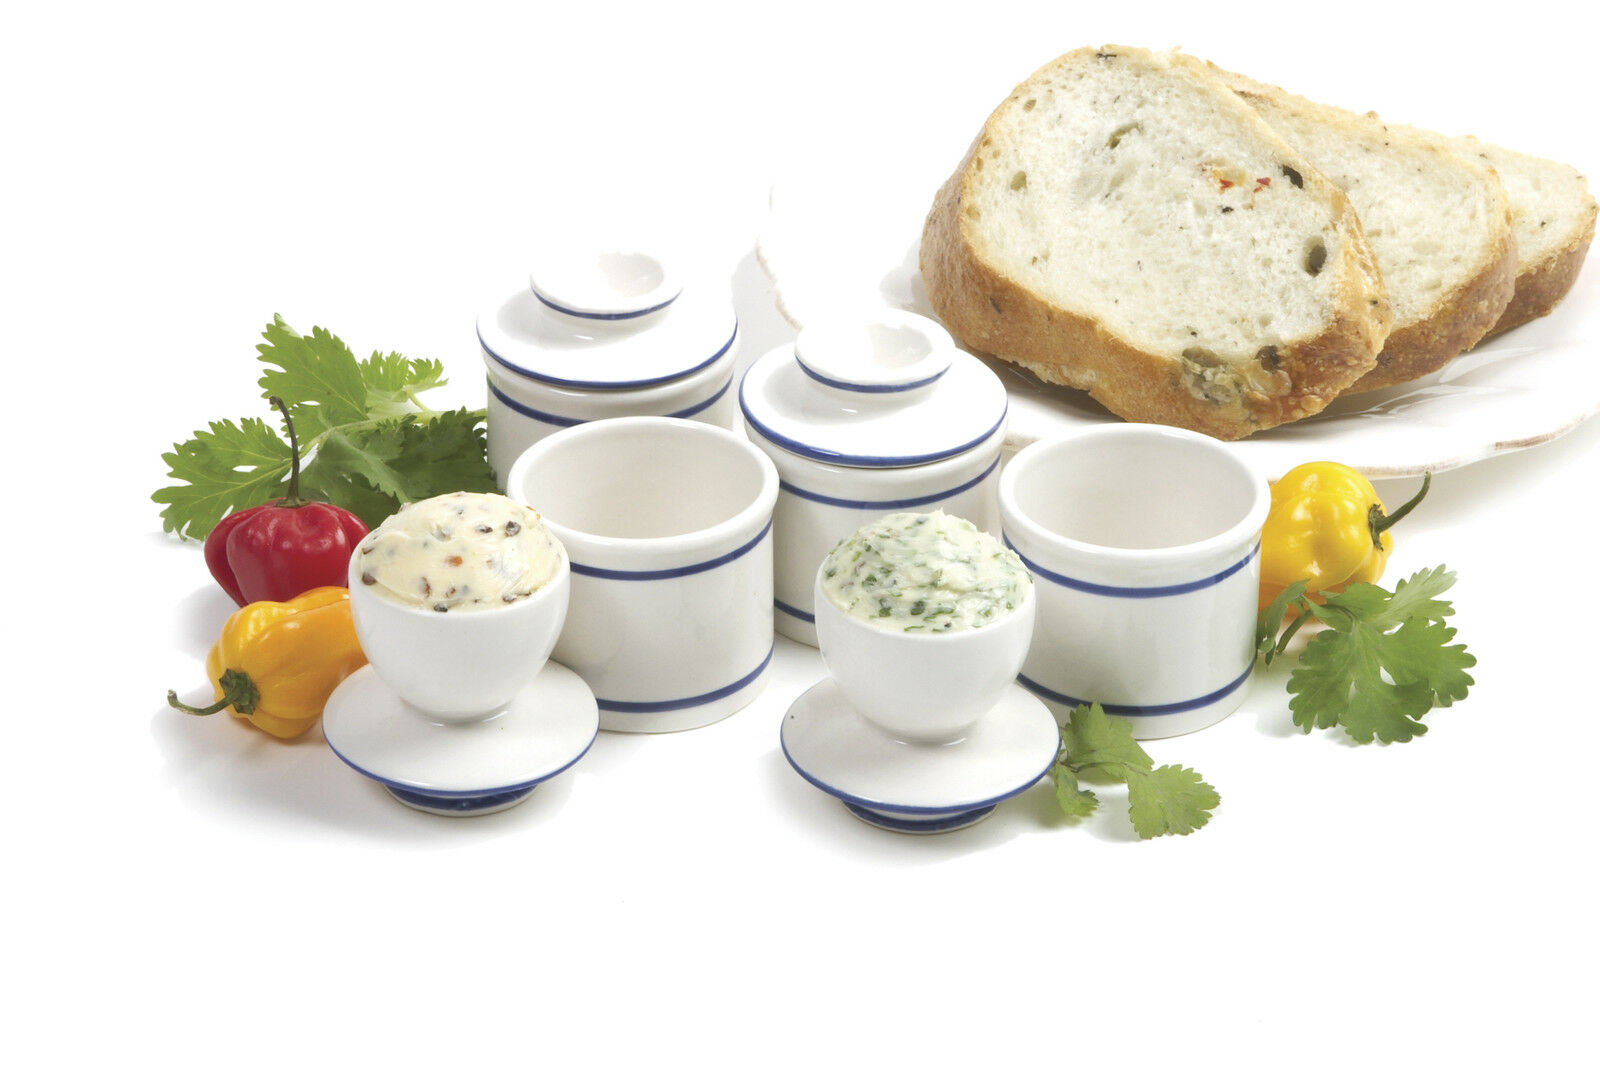 Norpro 287 Mini 4 Piece Butter Keeper Set, You Get 4 Butter Keepers on Sale